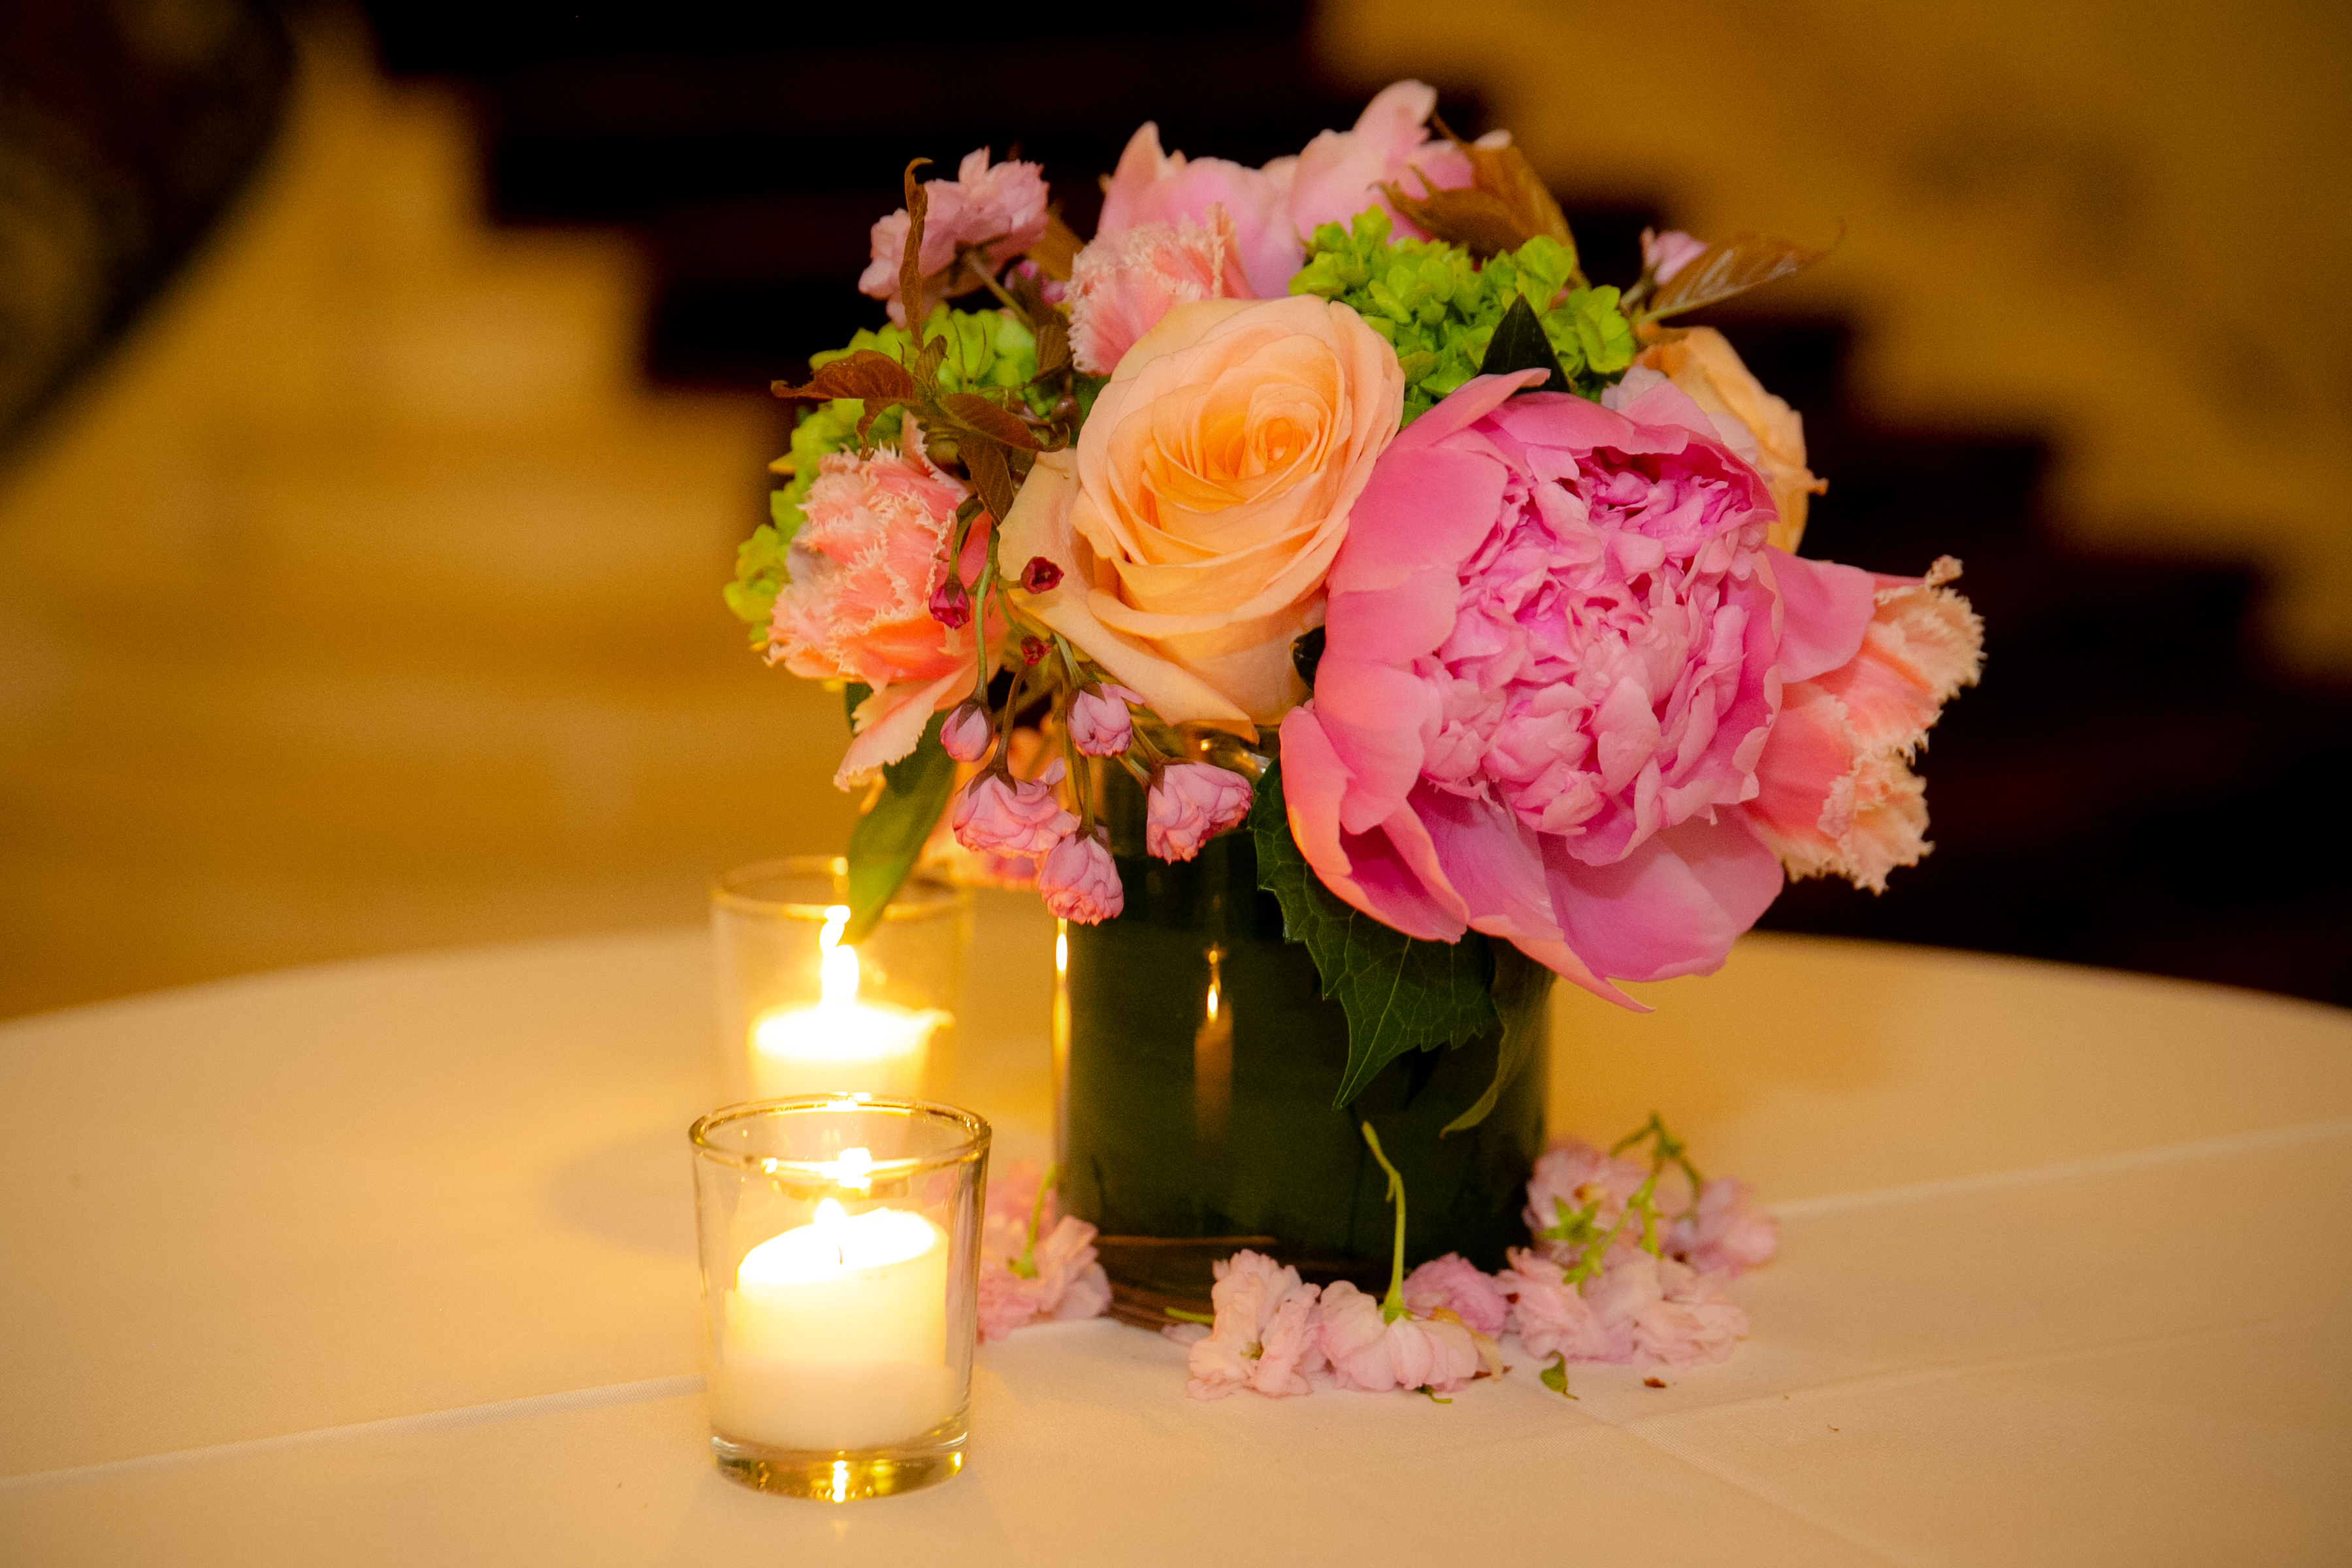 A picture of a floral arrangement with rose, yellow, and pastel colors on a table next to candles